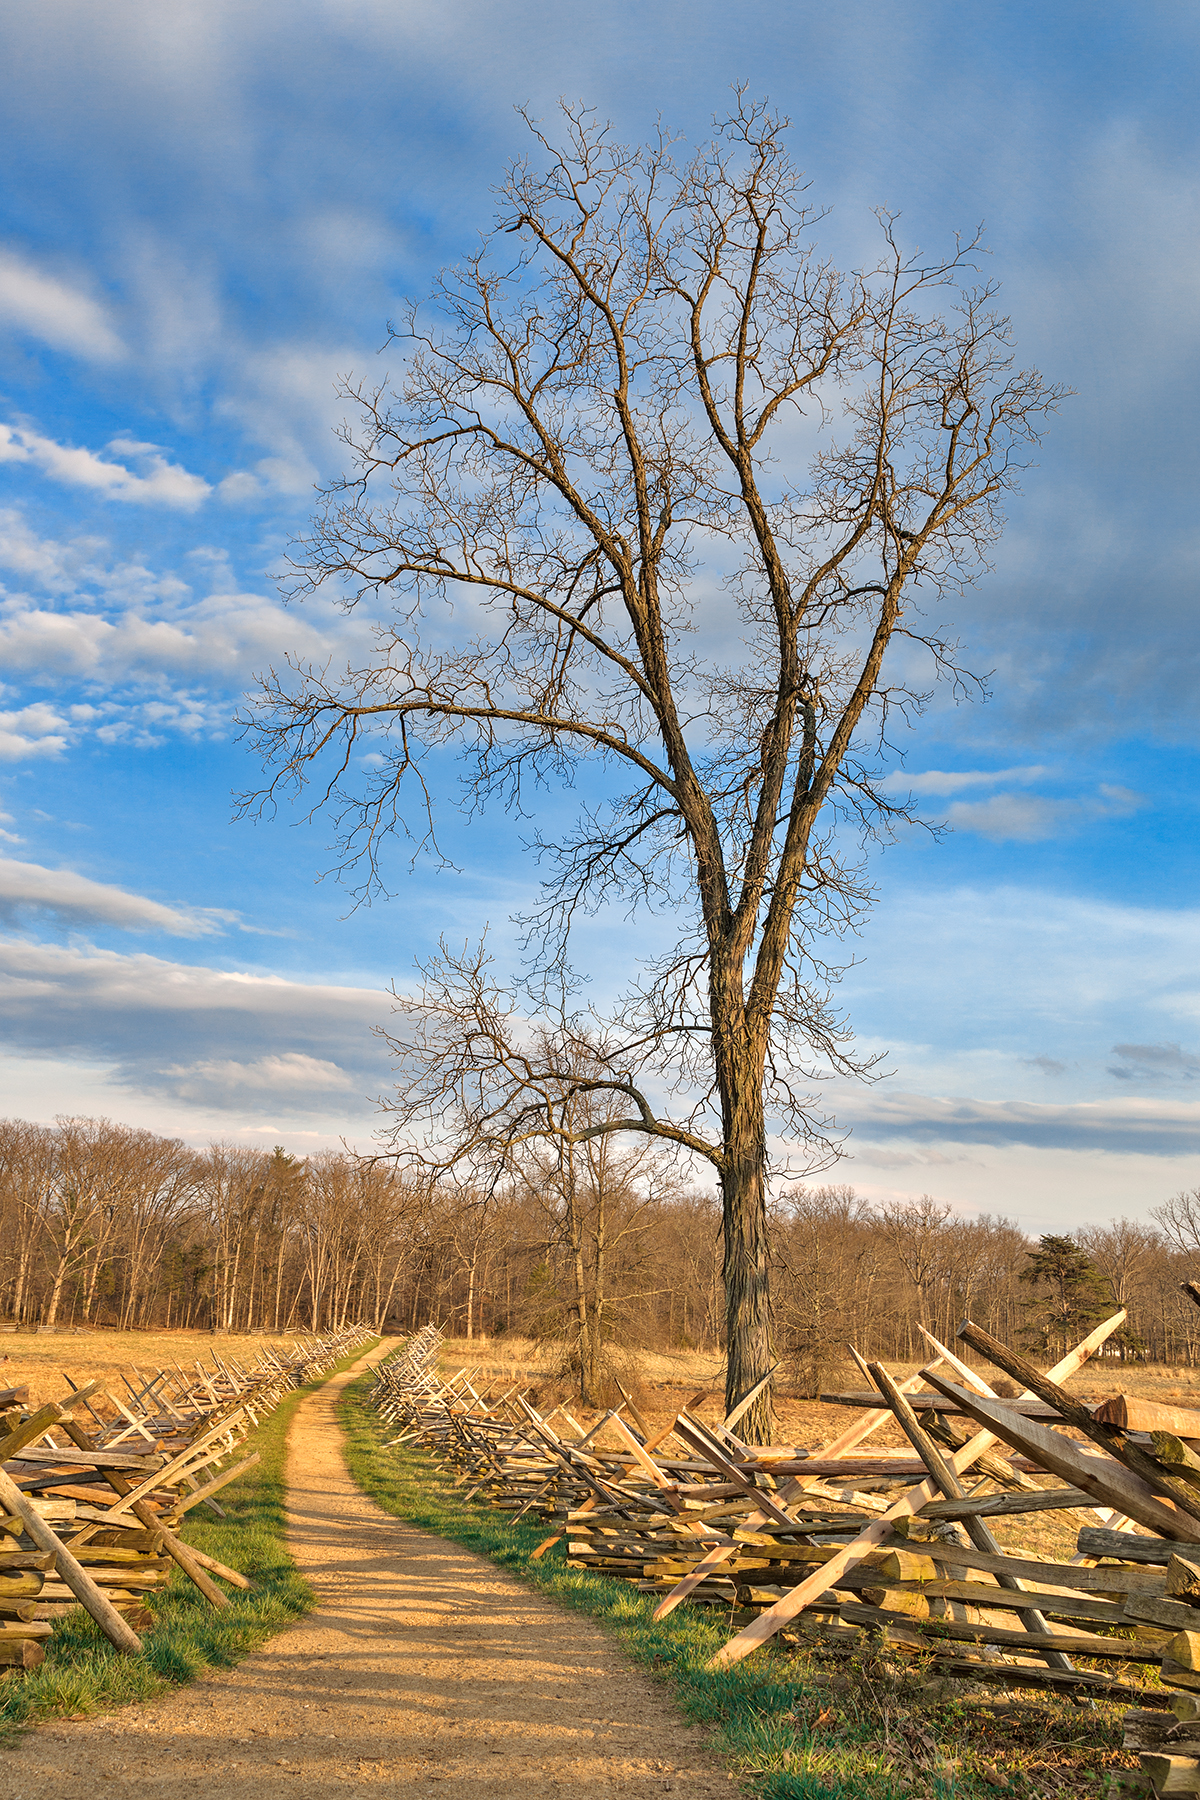 Winding Gettysburg Trail - HDR, America, Path, Scenic, Scenery, HQ Photo